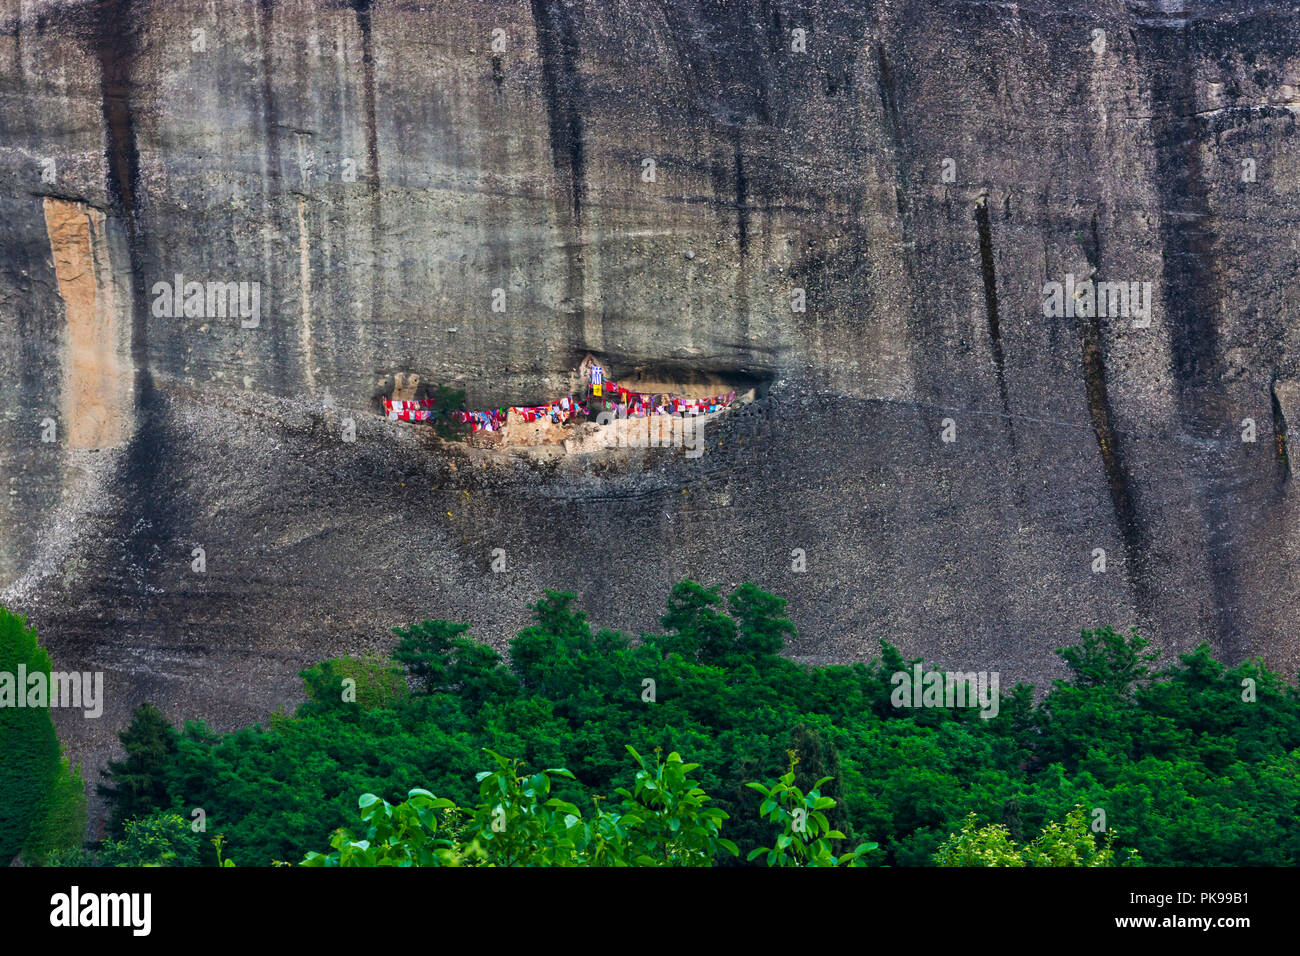 Climber's resting place on the cliff, Meteora, Greece - Stock Image